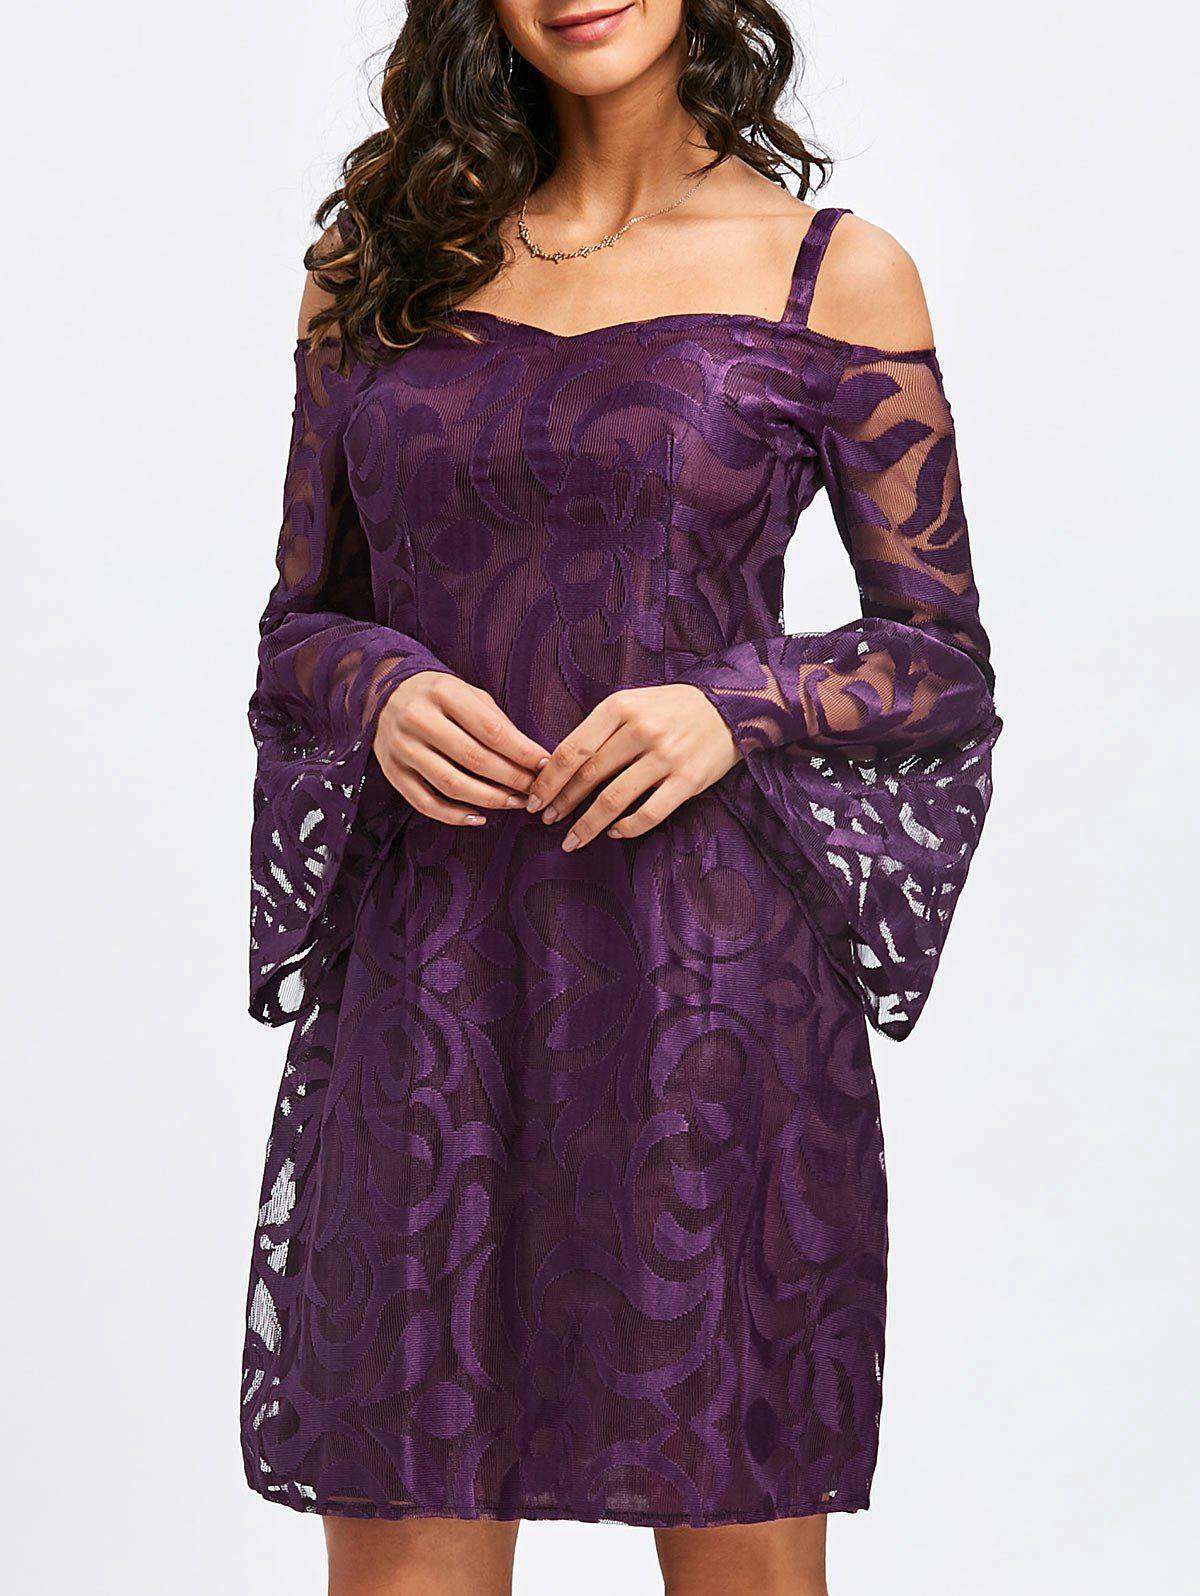 Bell Sleeve Cold Shoulder Lace Dress - PURPLE S